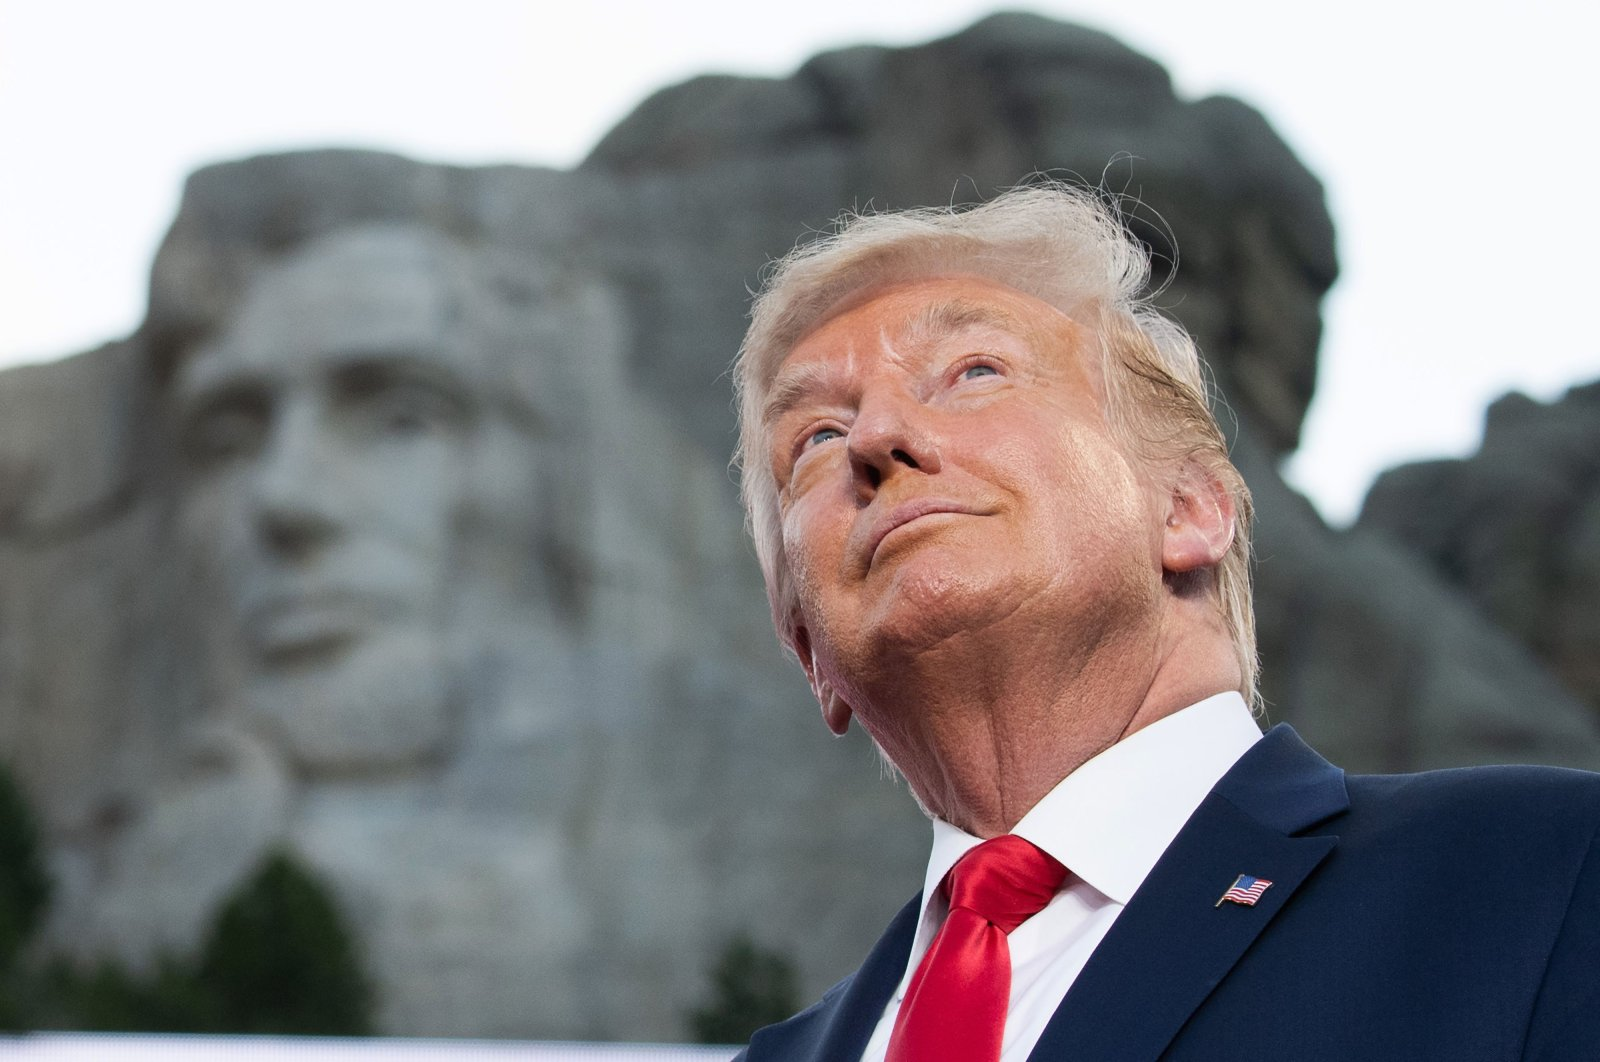 US President Donald Trump arrives for the Independence Day events at Mount Rushmore National Memorial in Keystone, South Dakota, July 3, 2020. (AFP Photo)